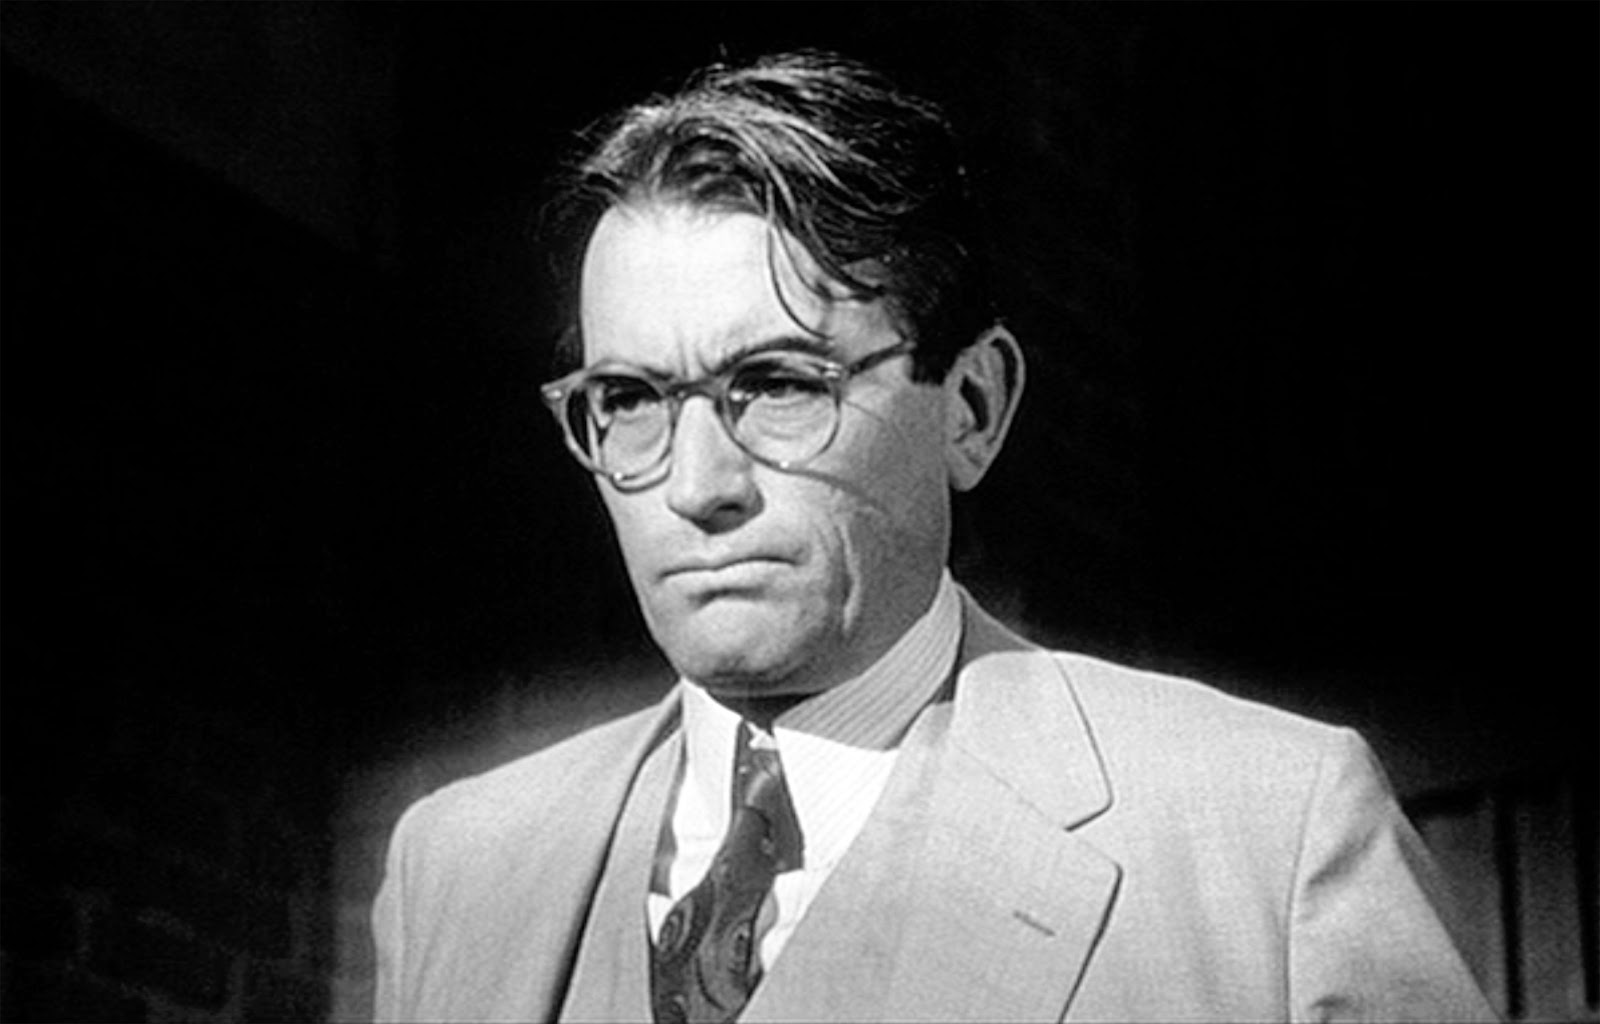 How does Atticus change over the time span of To Kill a Mockingbird?